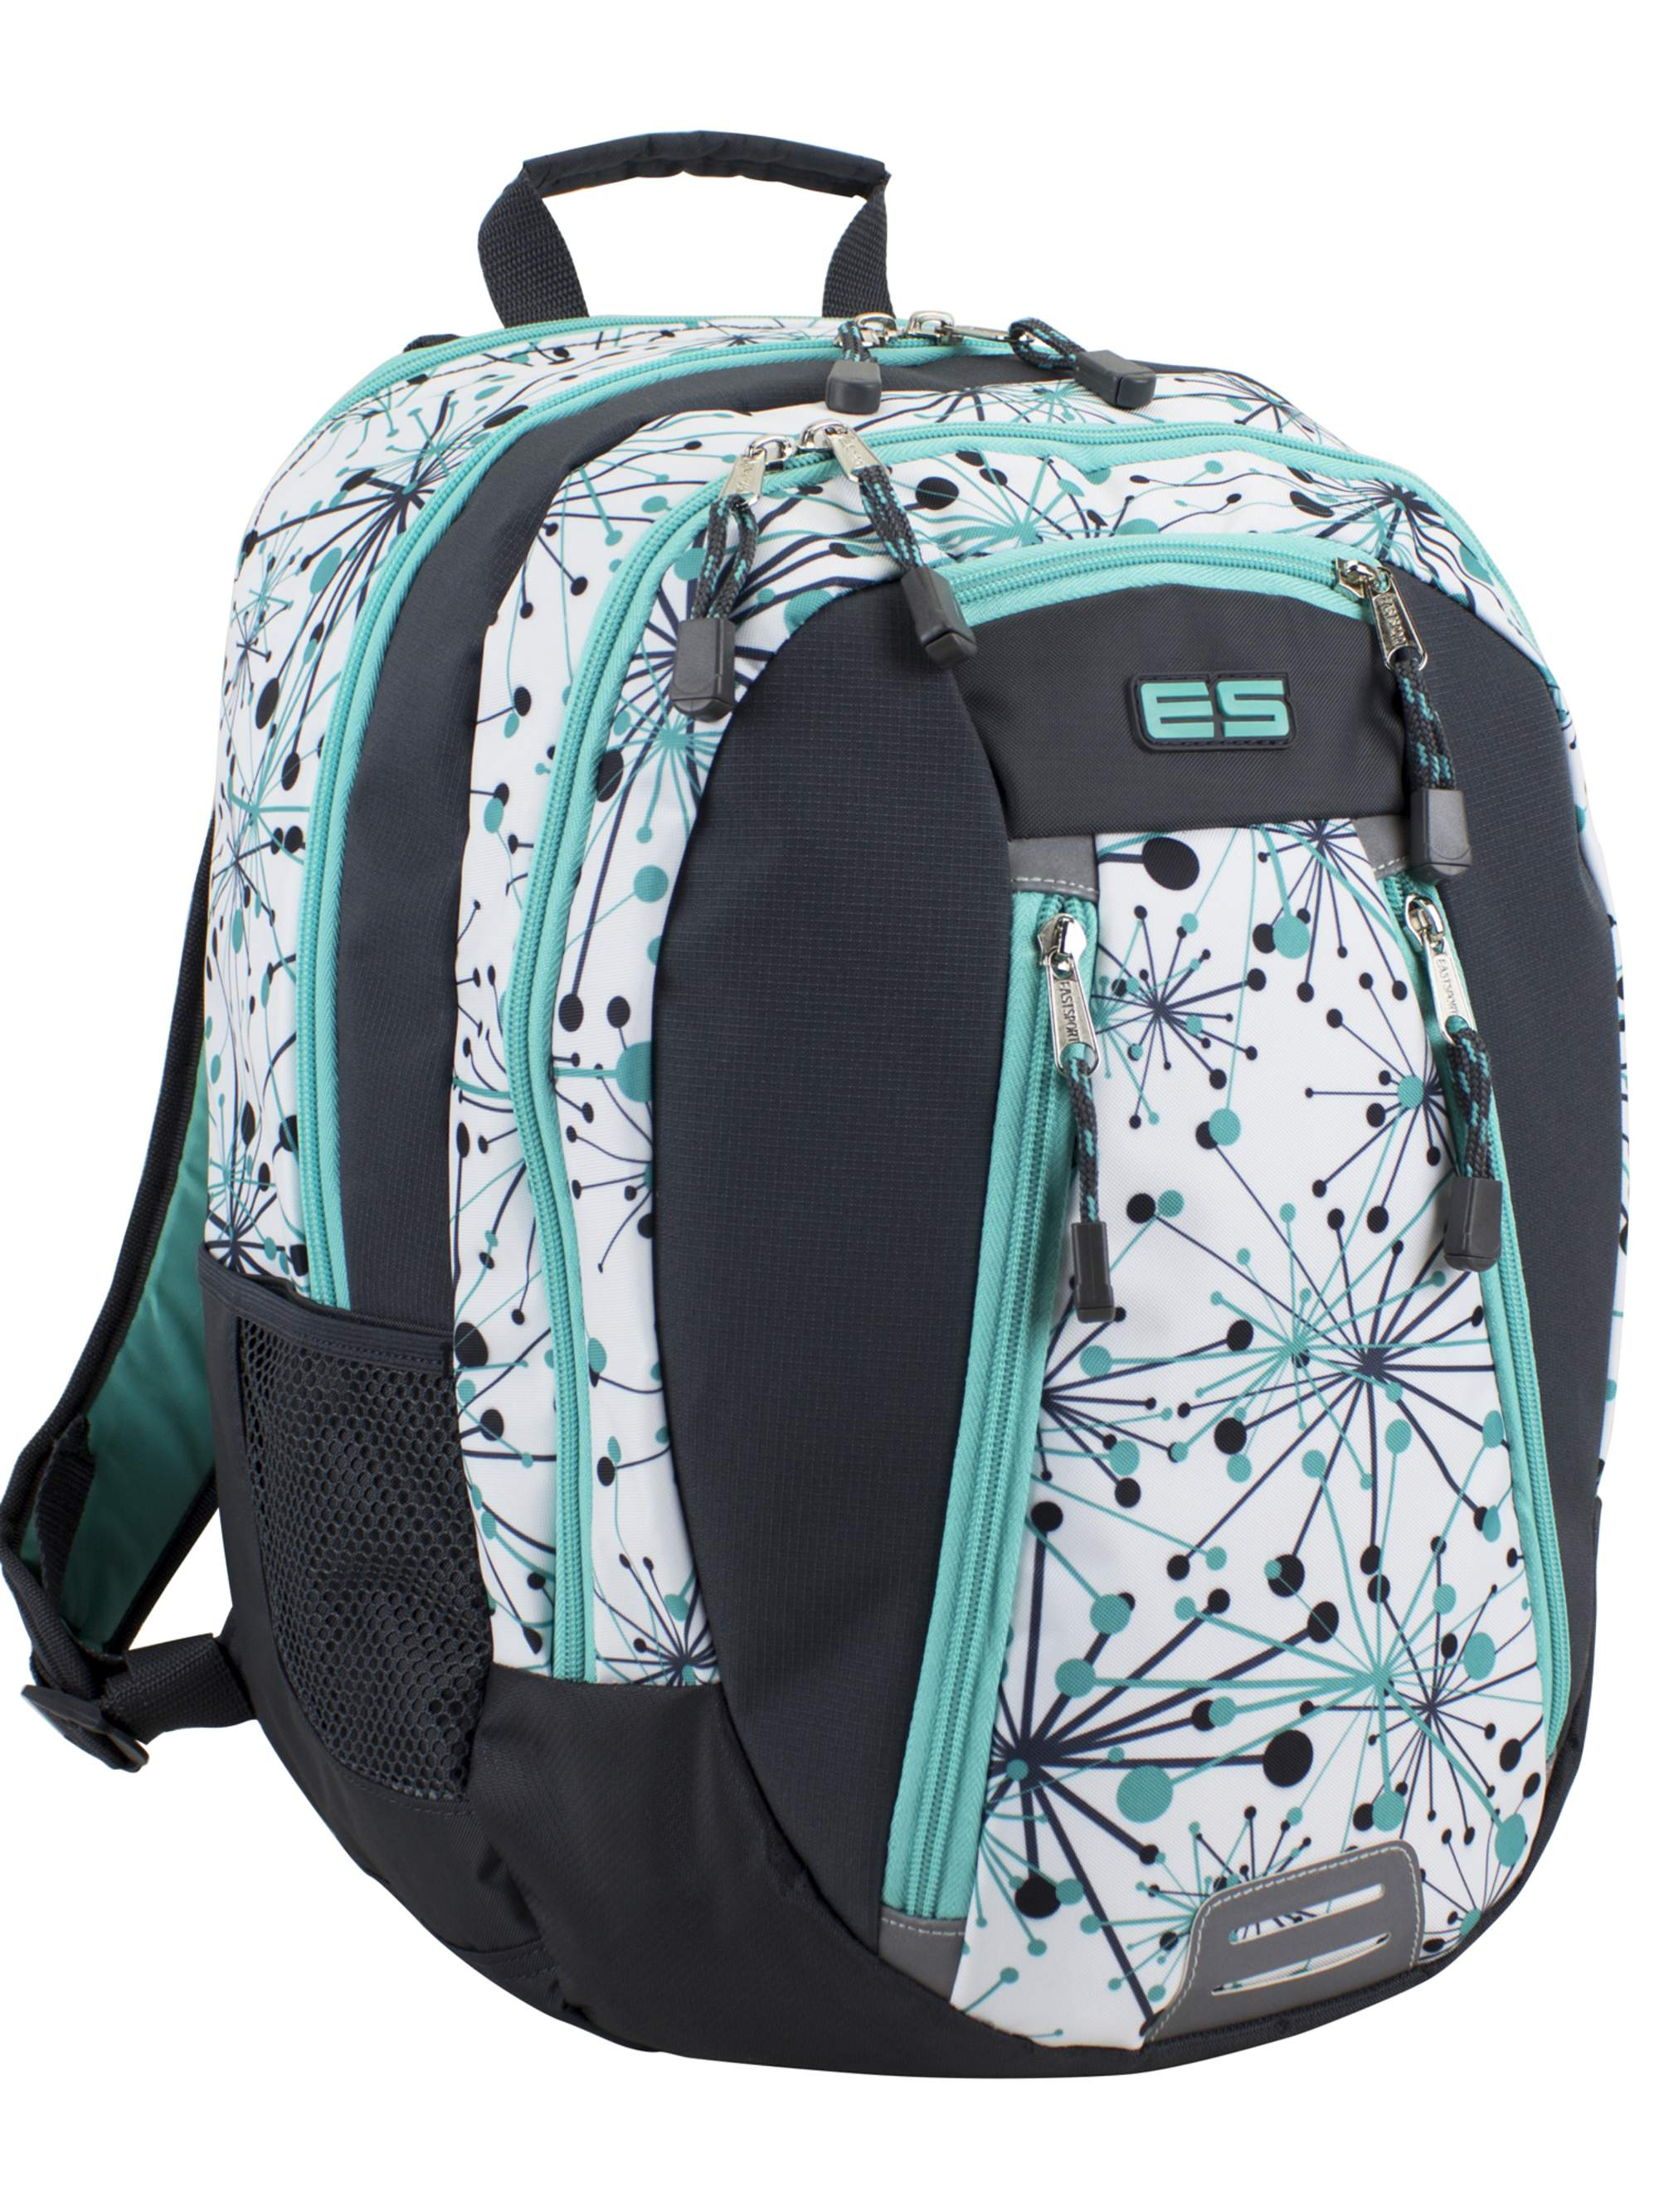 Womens Backpacks - Walmart.com